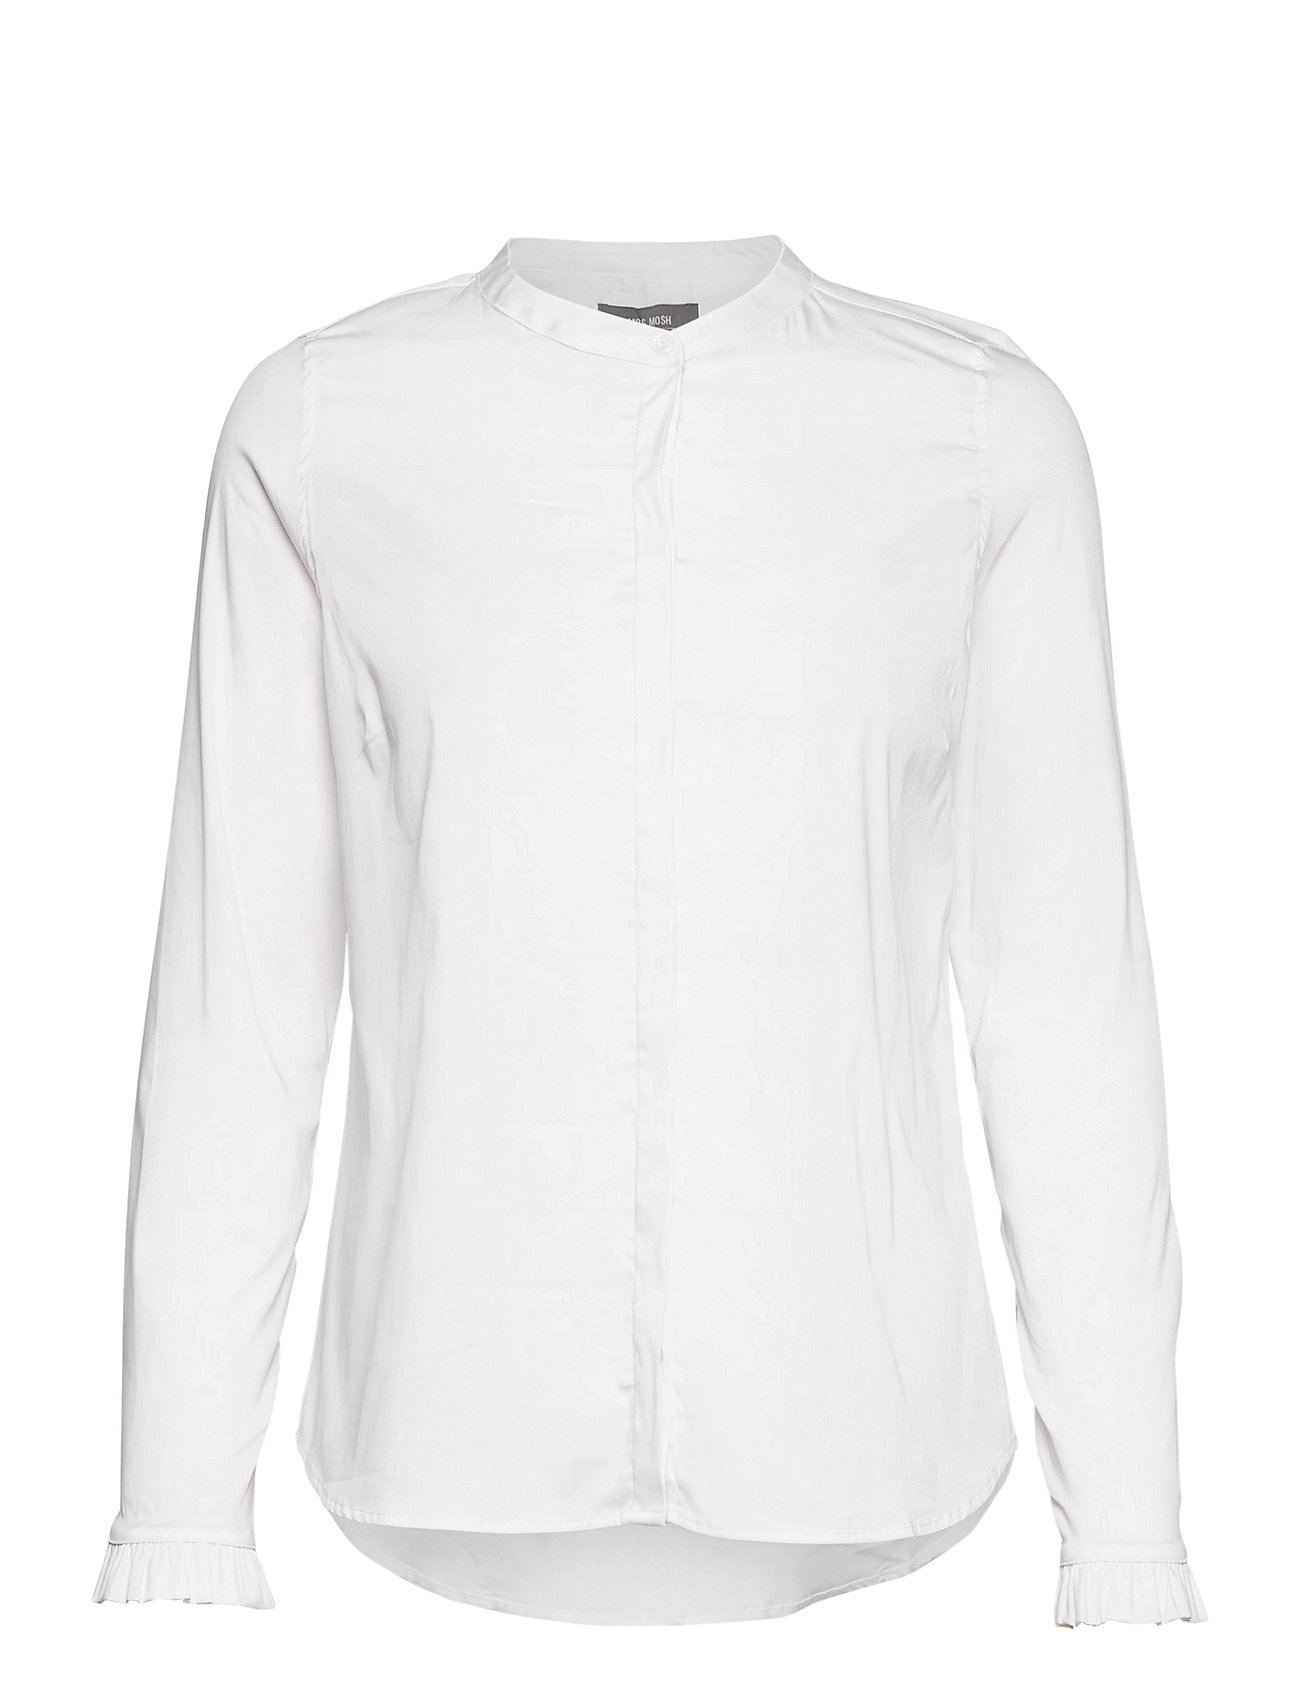 Image of Mattie Sustainable Shirt Langærmet Skjorte Hvid MOS MOSH (3435437031)